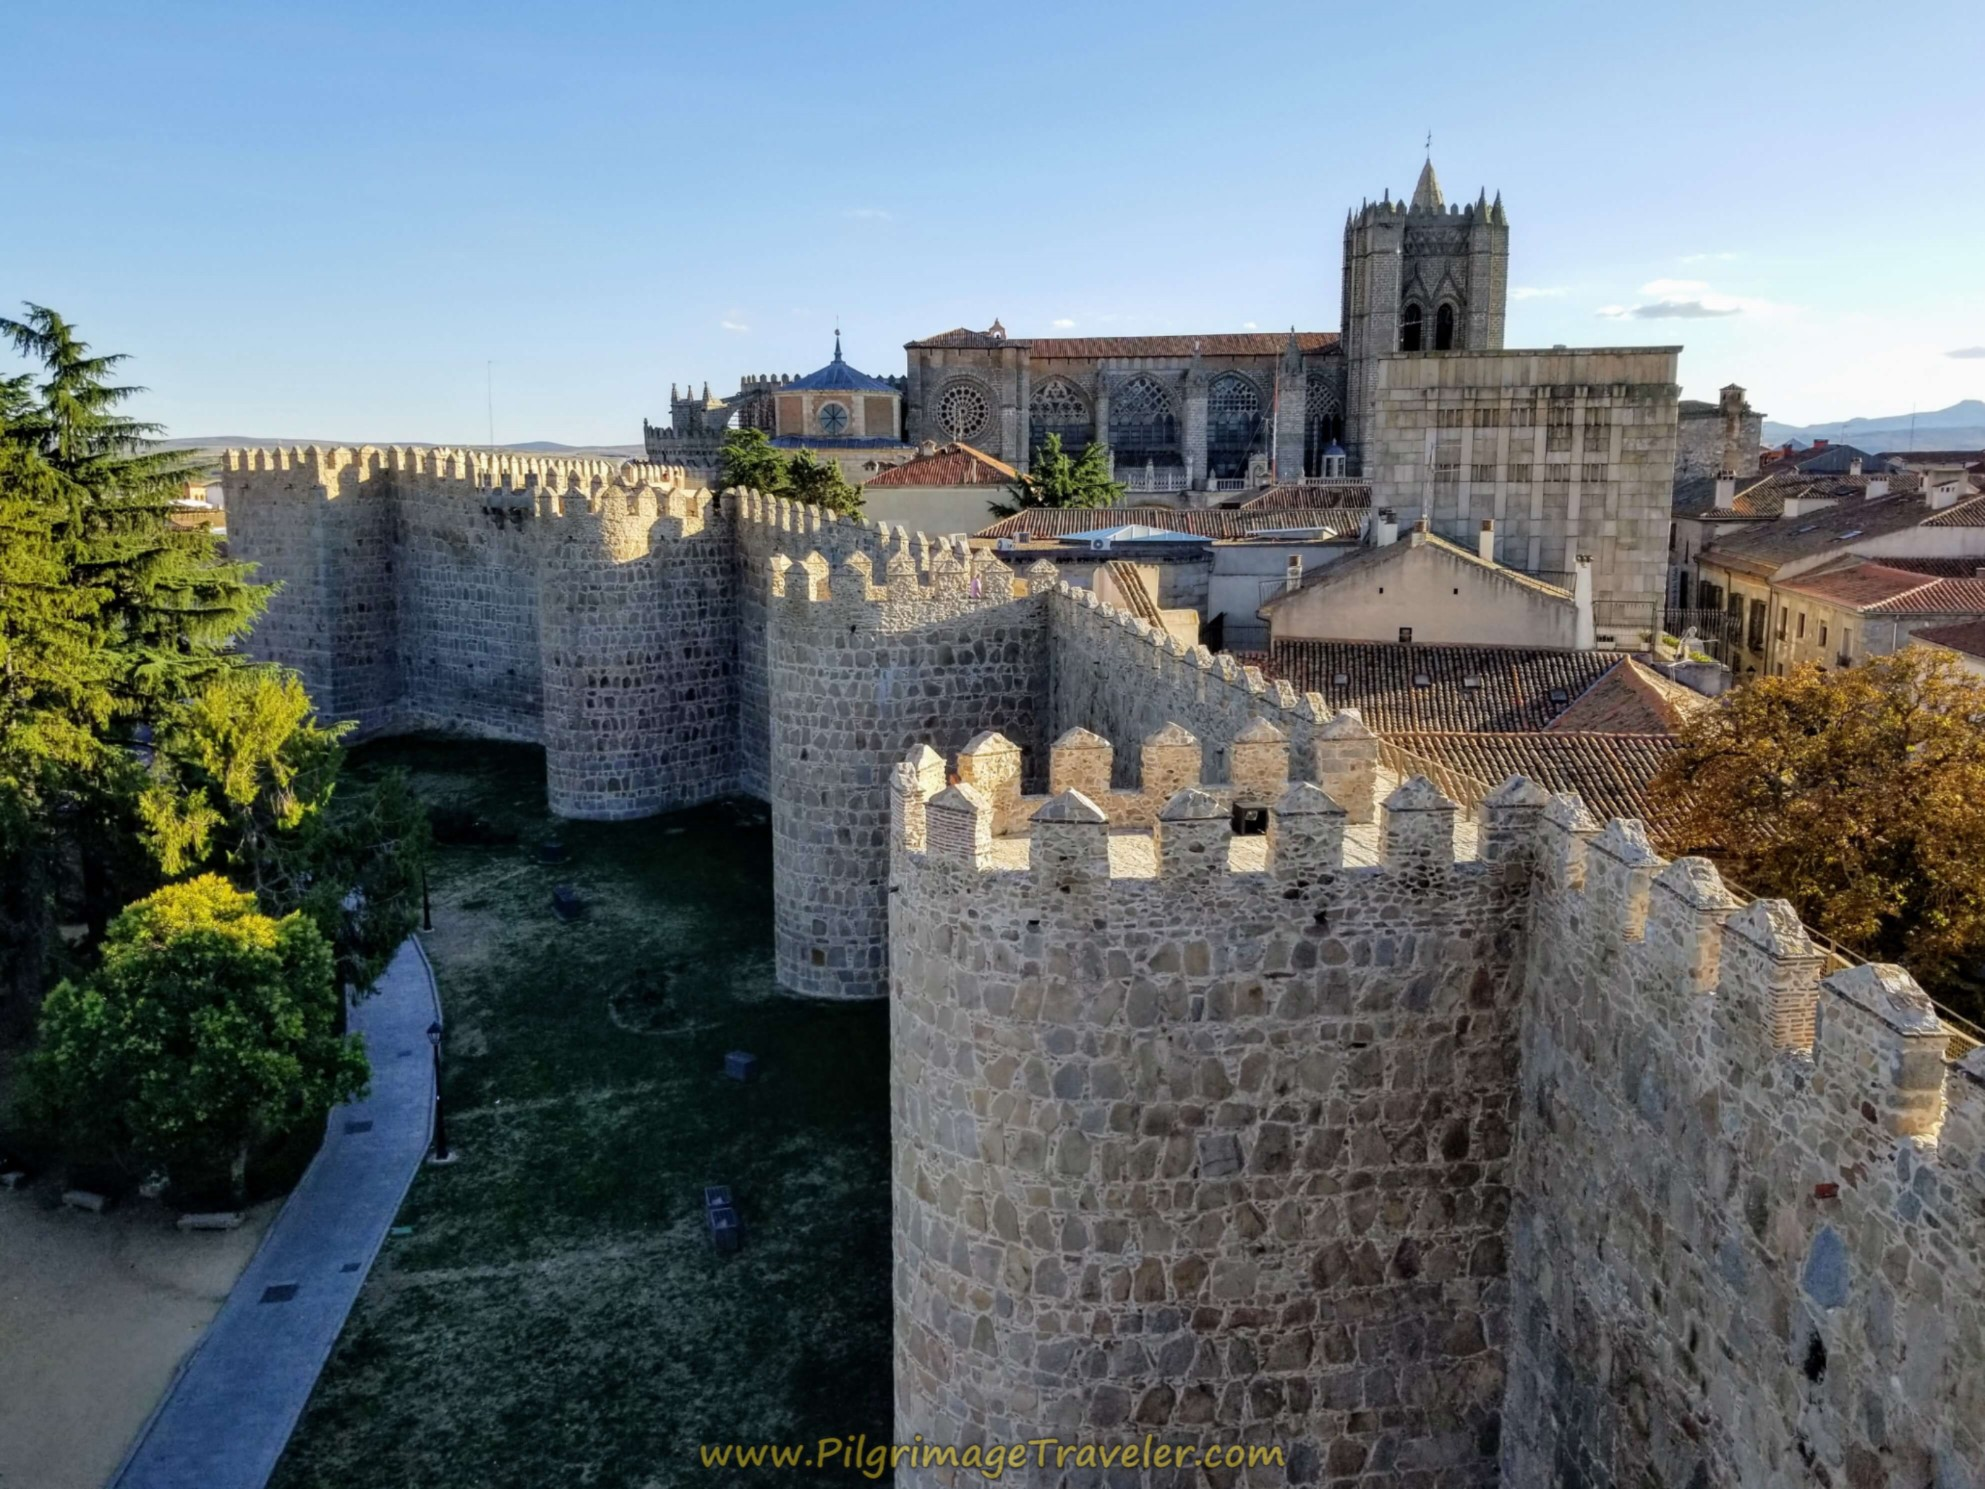 Pilgrimage to Ávila ~ The Start of the Camino Teresiano